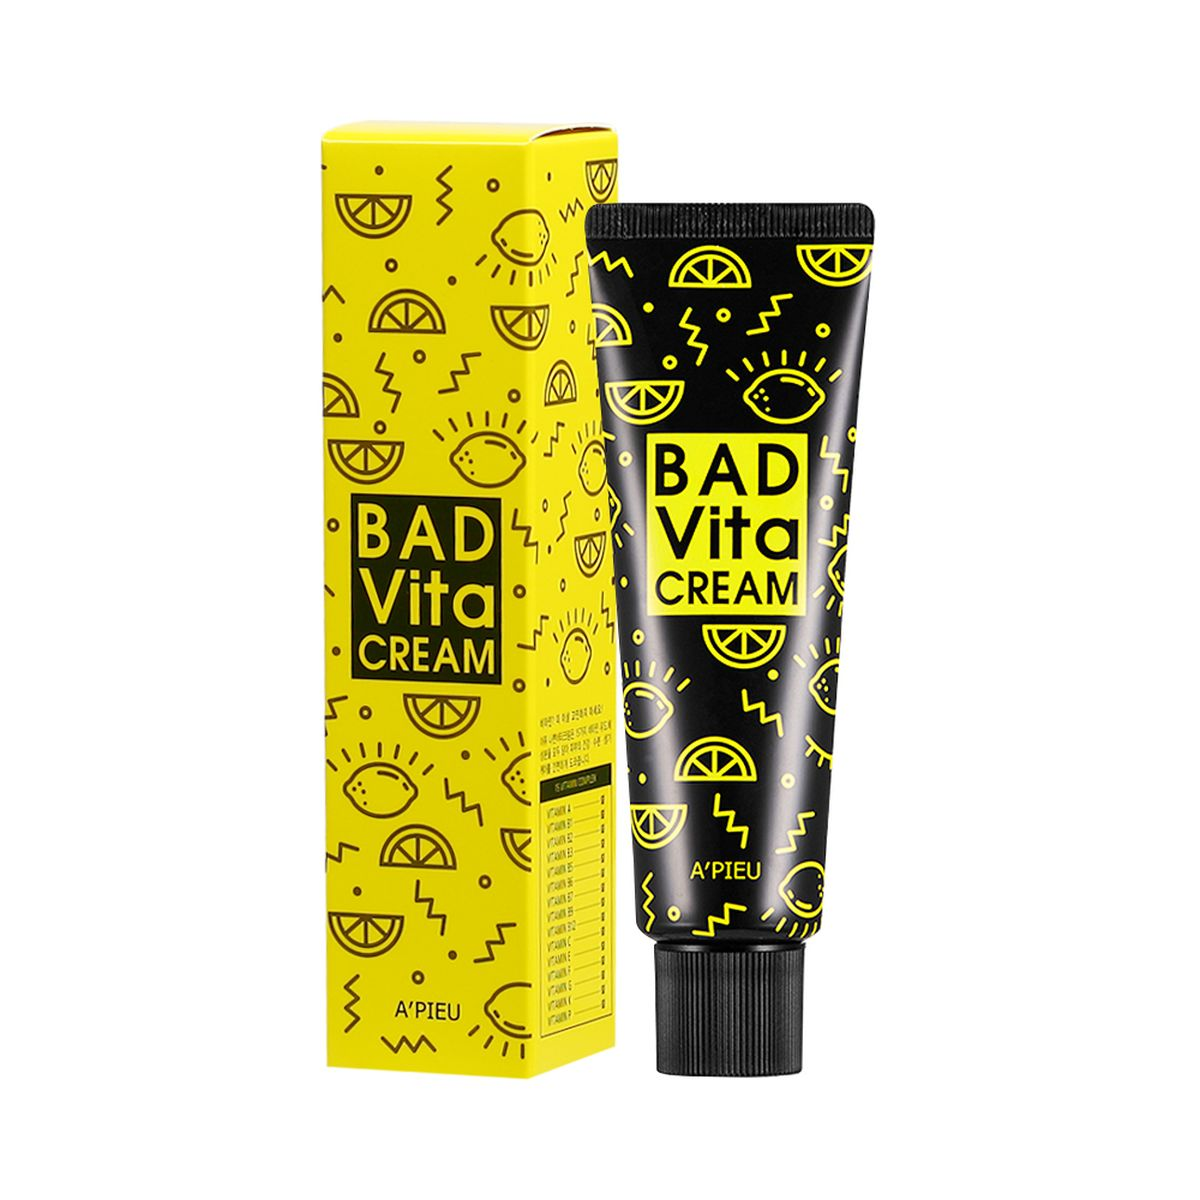 Крем для лица с витаминным комплексом A'PIEU Bad Vita Cream - 50 мл